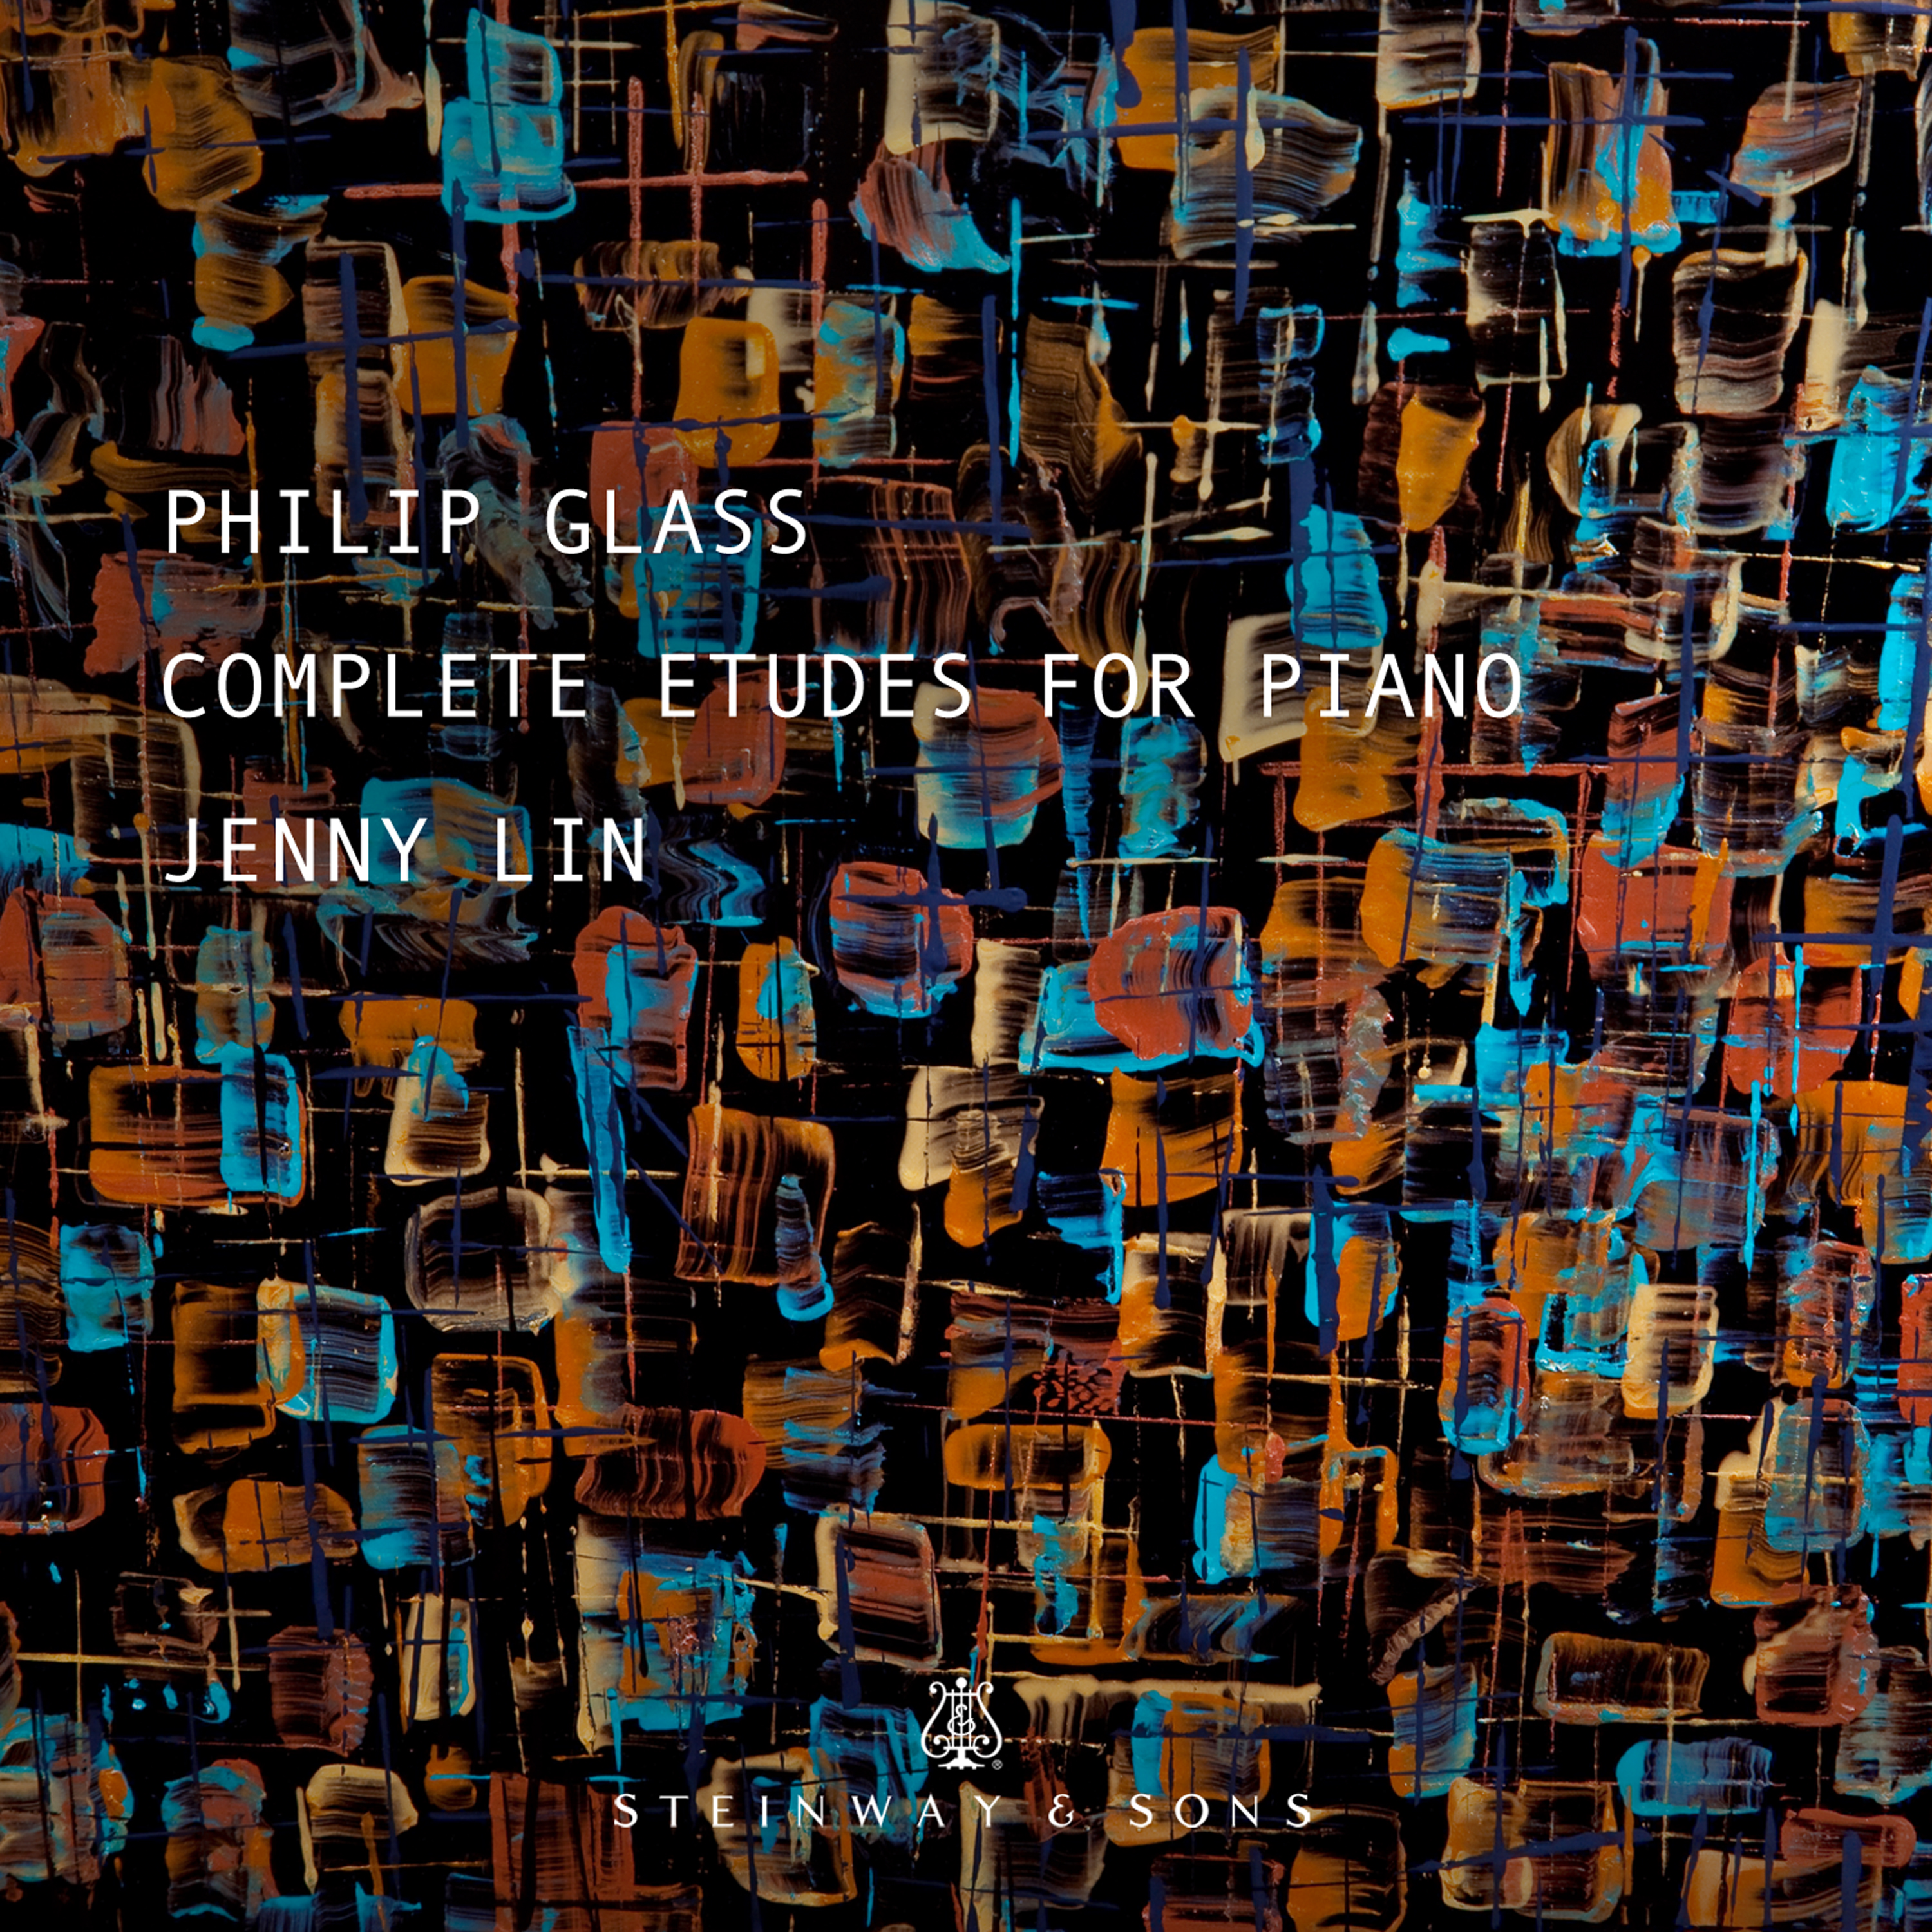 Philip Glass Etudes - Jenny Lin - Steinway & Sons